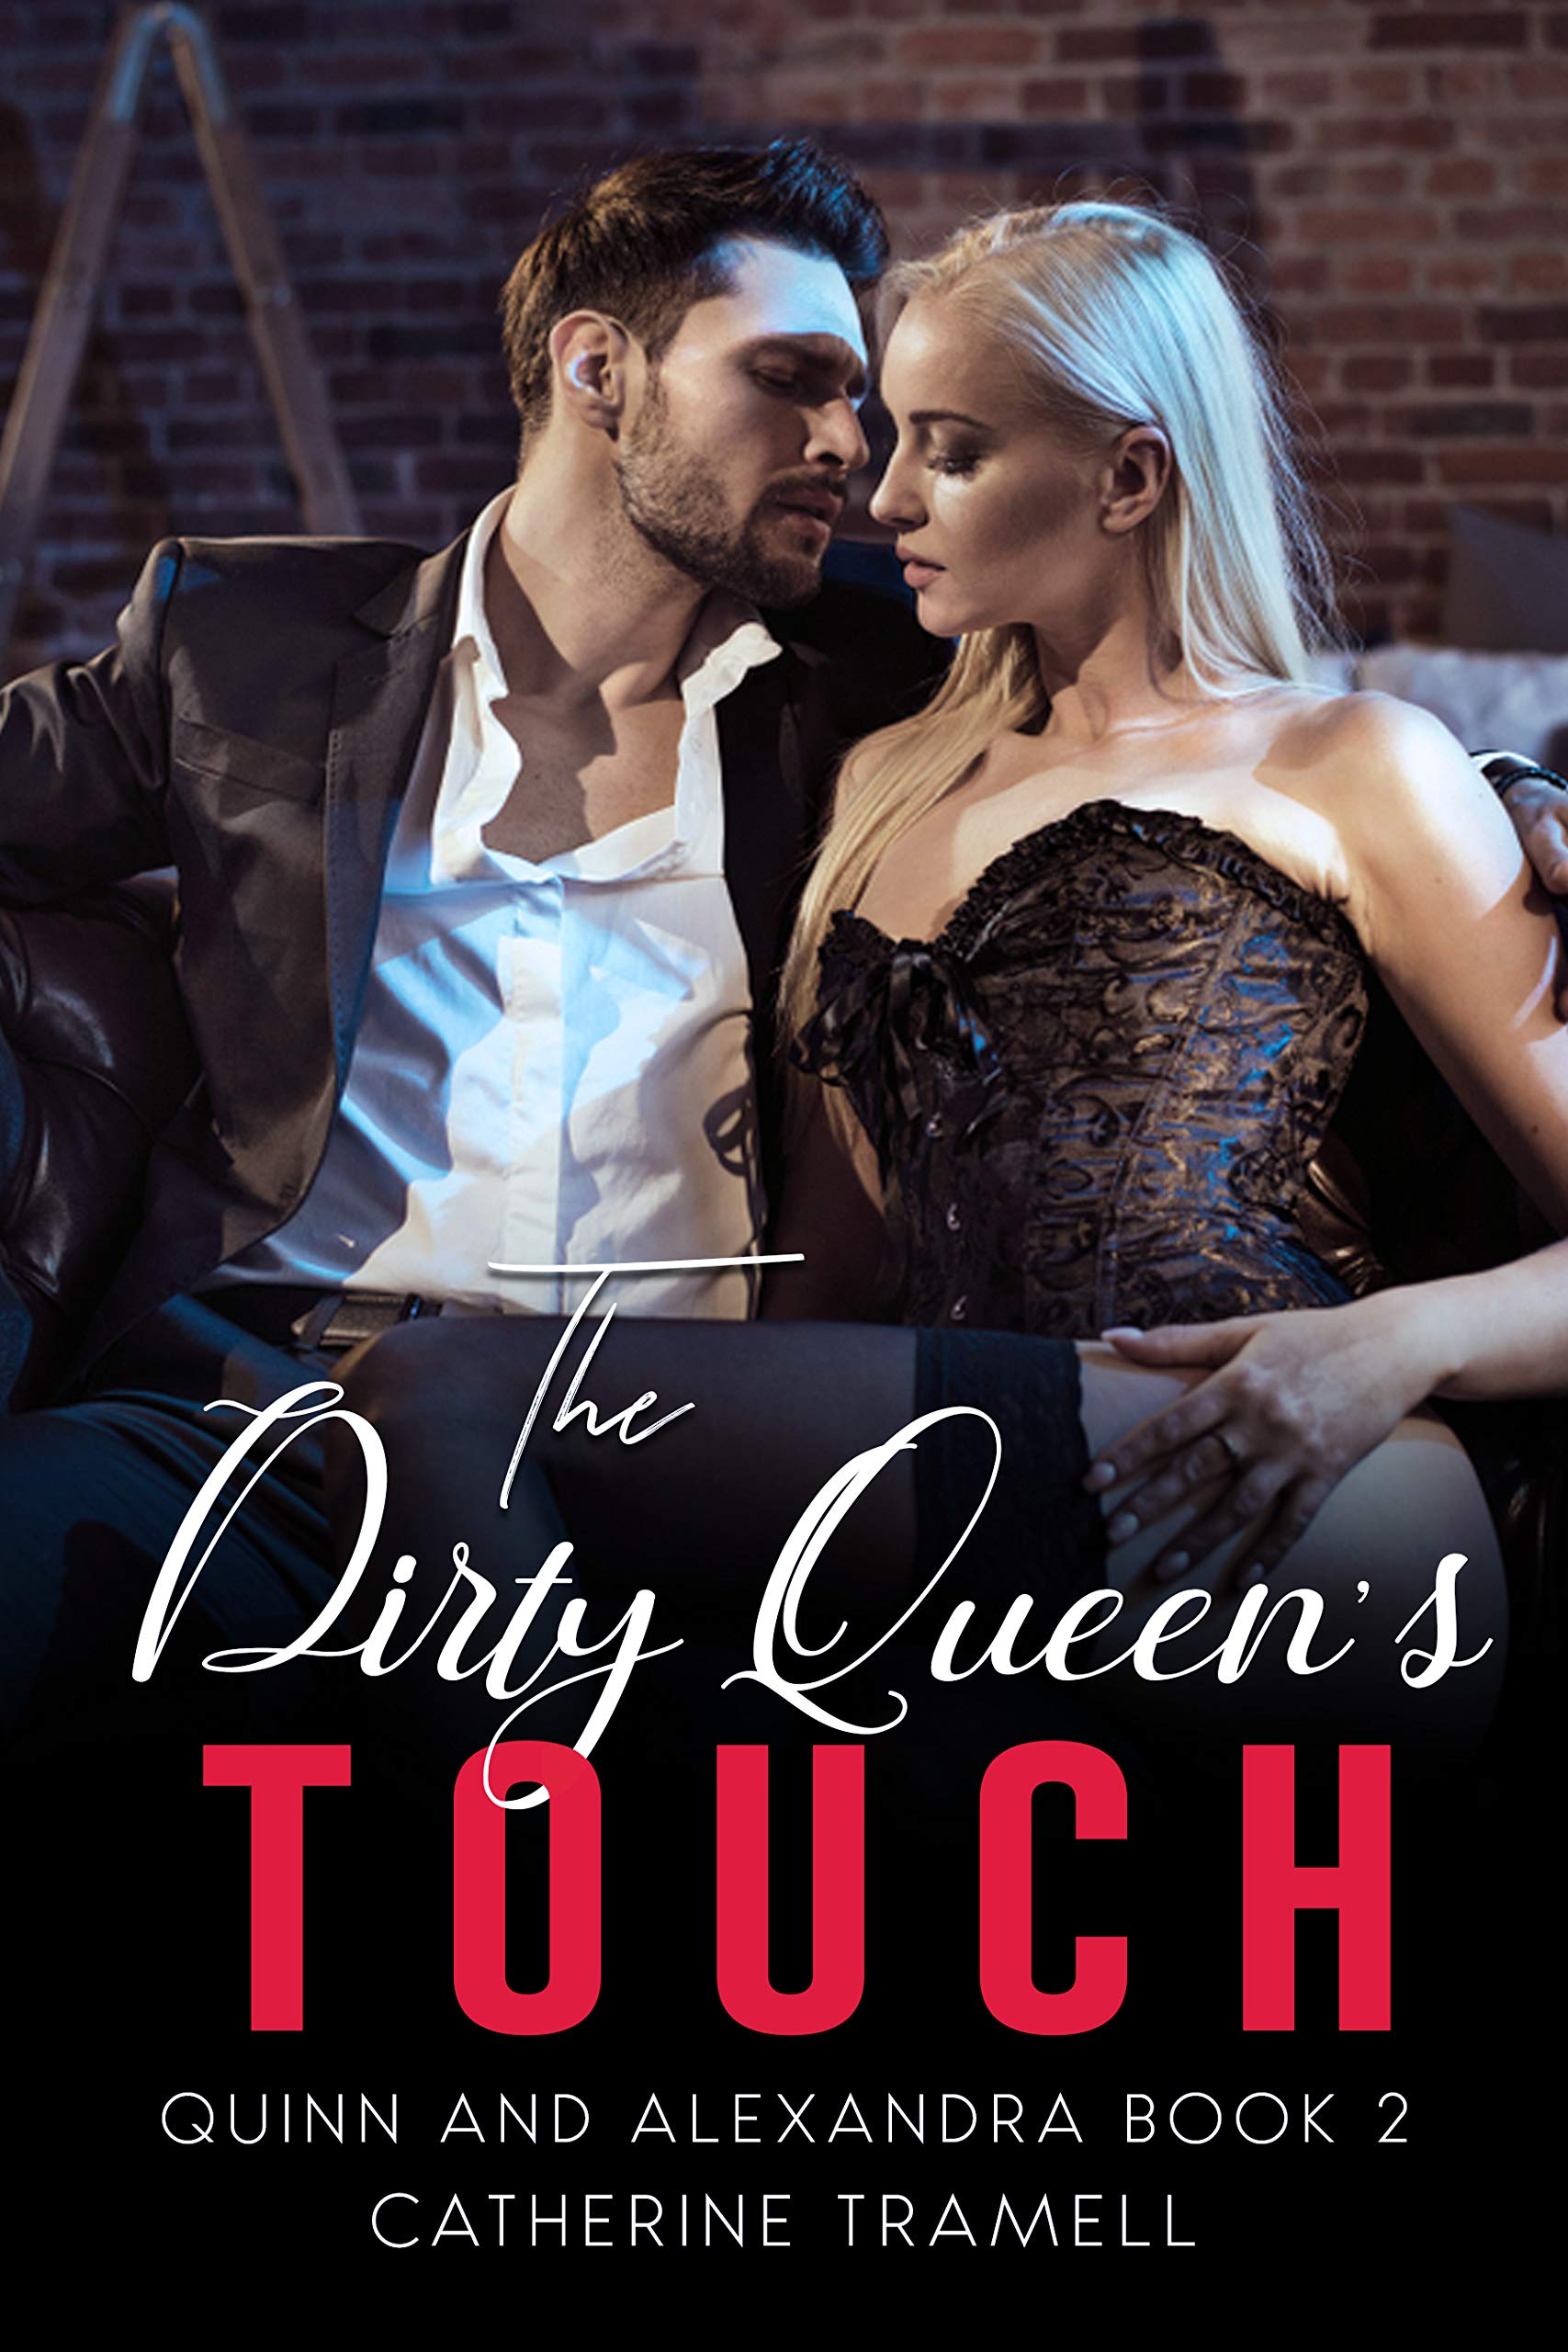 The Dirty Queen's Touch (QUINN AND ALEXANDRA Book 2)